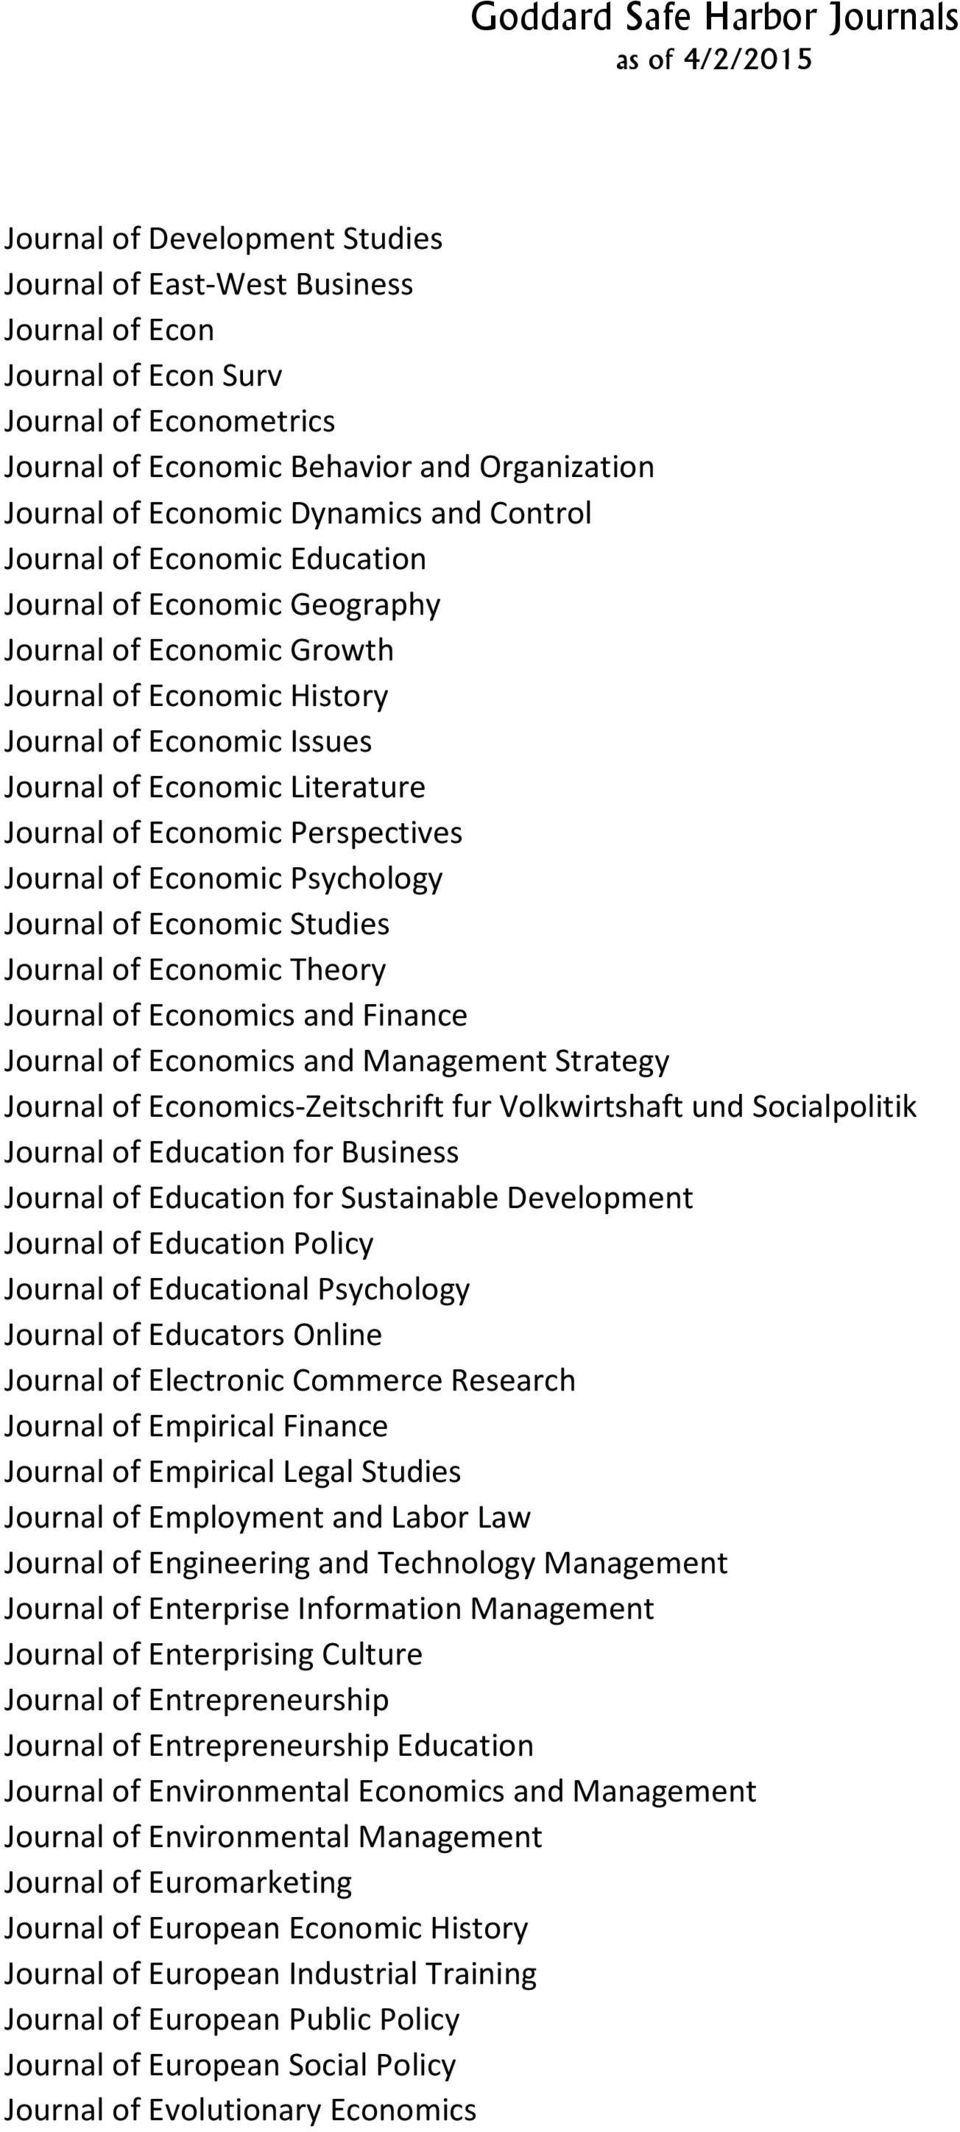 Economic Perspectives Journal of Economic Psychology Journal of Economic Studies Journal of Economic Theory Journal of Economics and Finance Journal of Economics and Management Strategy Journal of